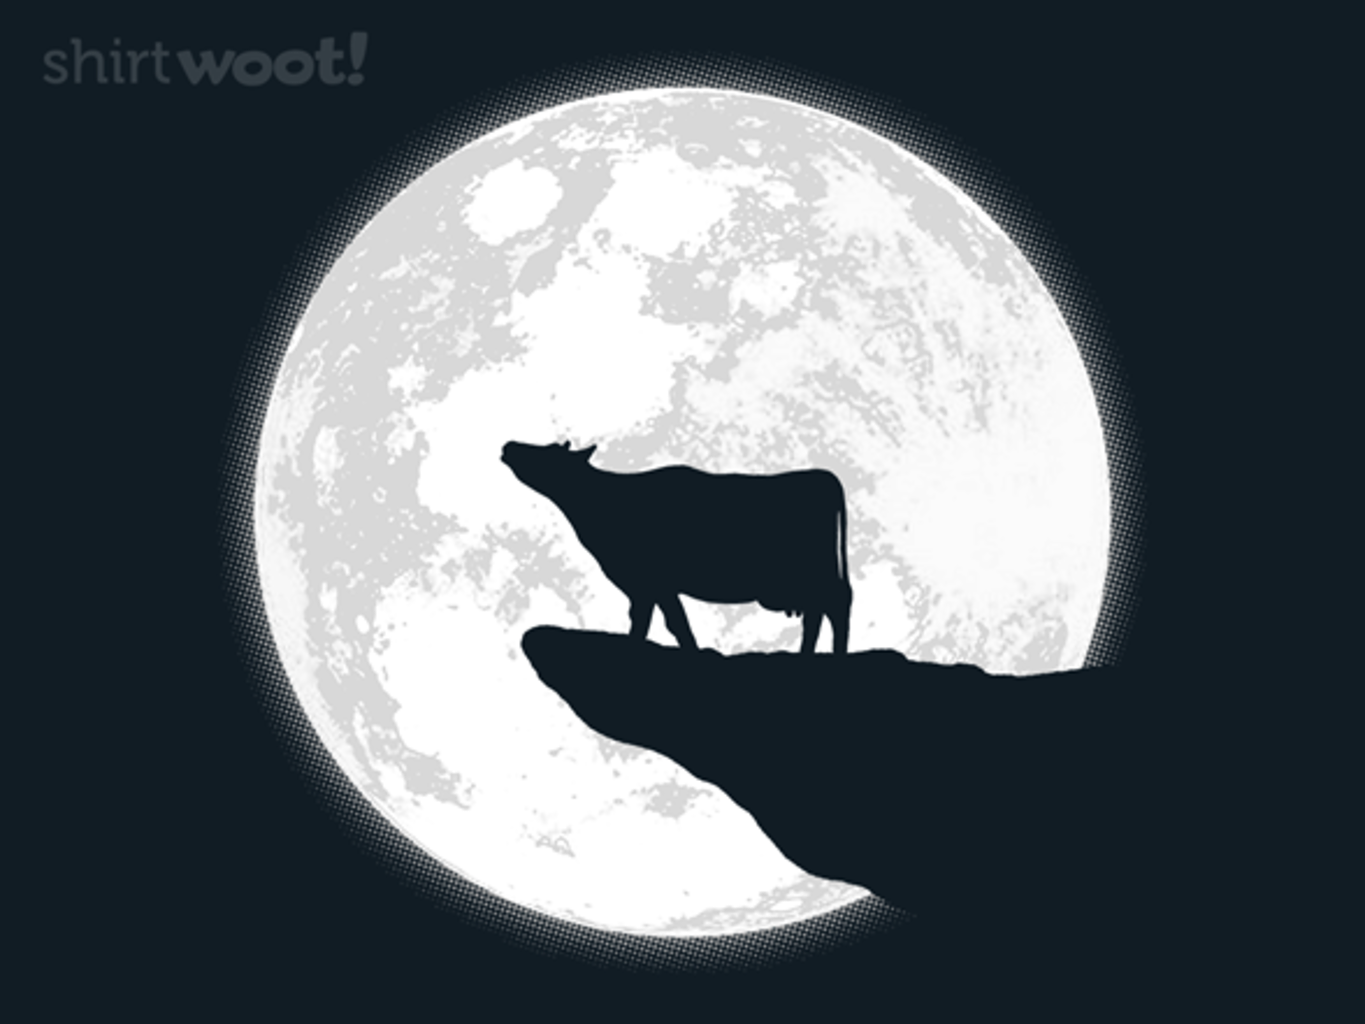 Woot!: Sing Under The Moon